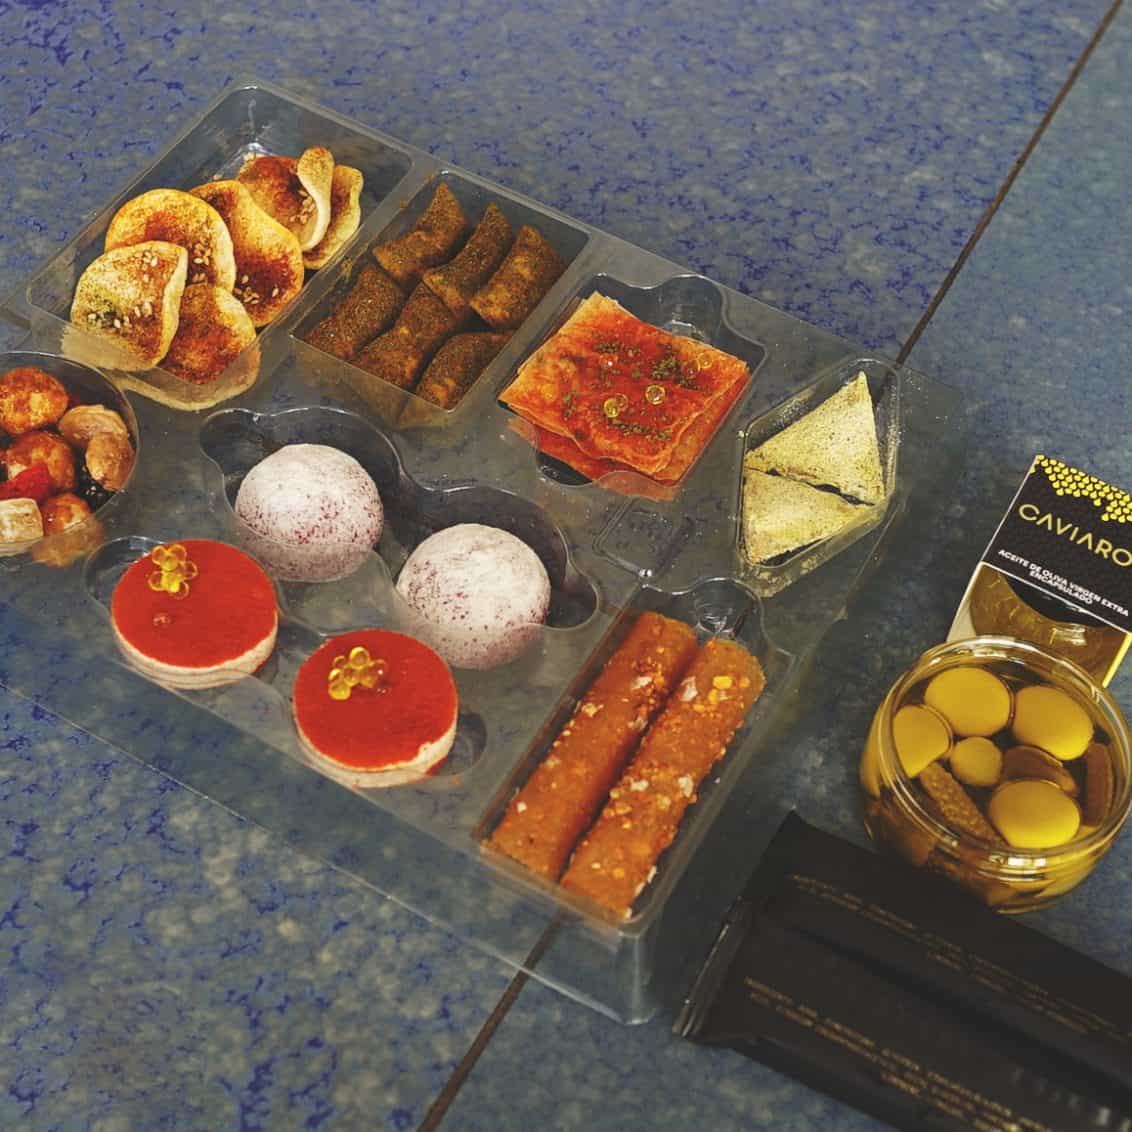 CD-at-Home-snacks-2-1132x1132